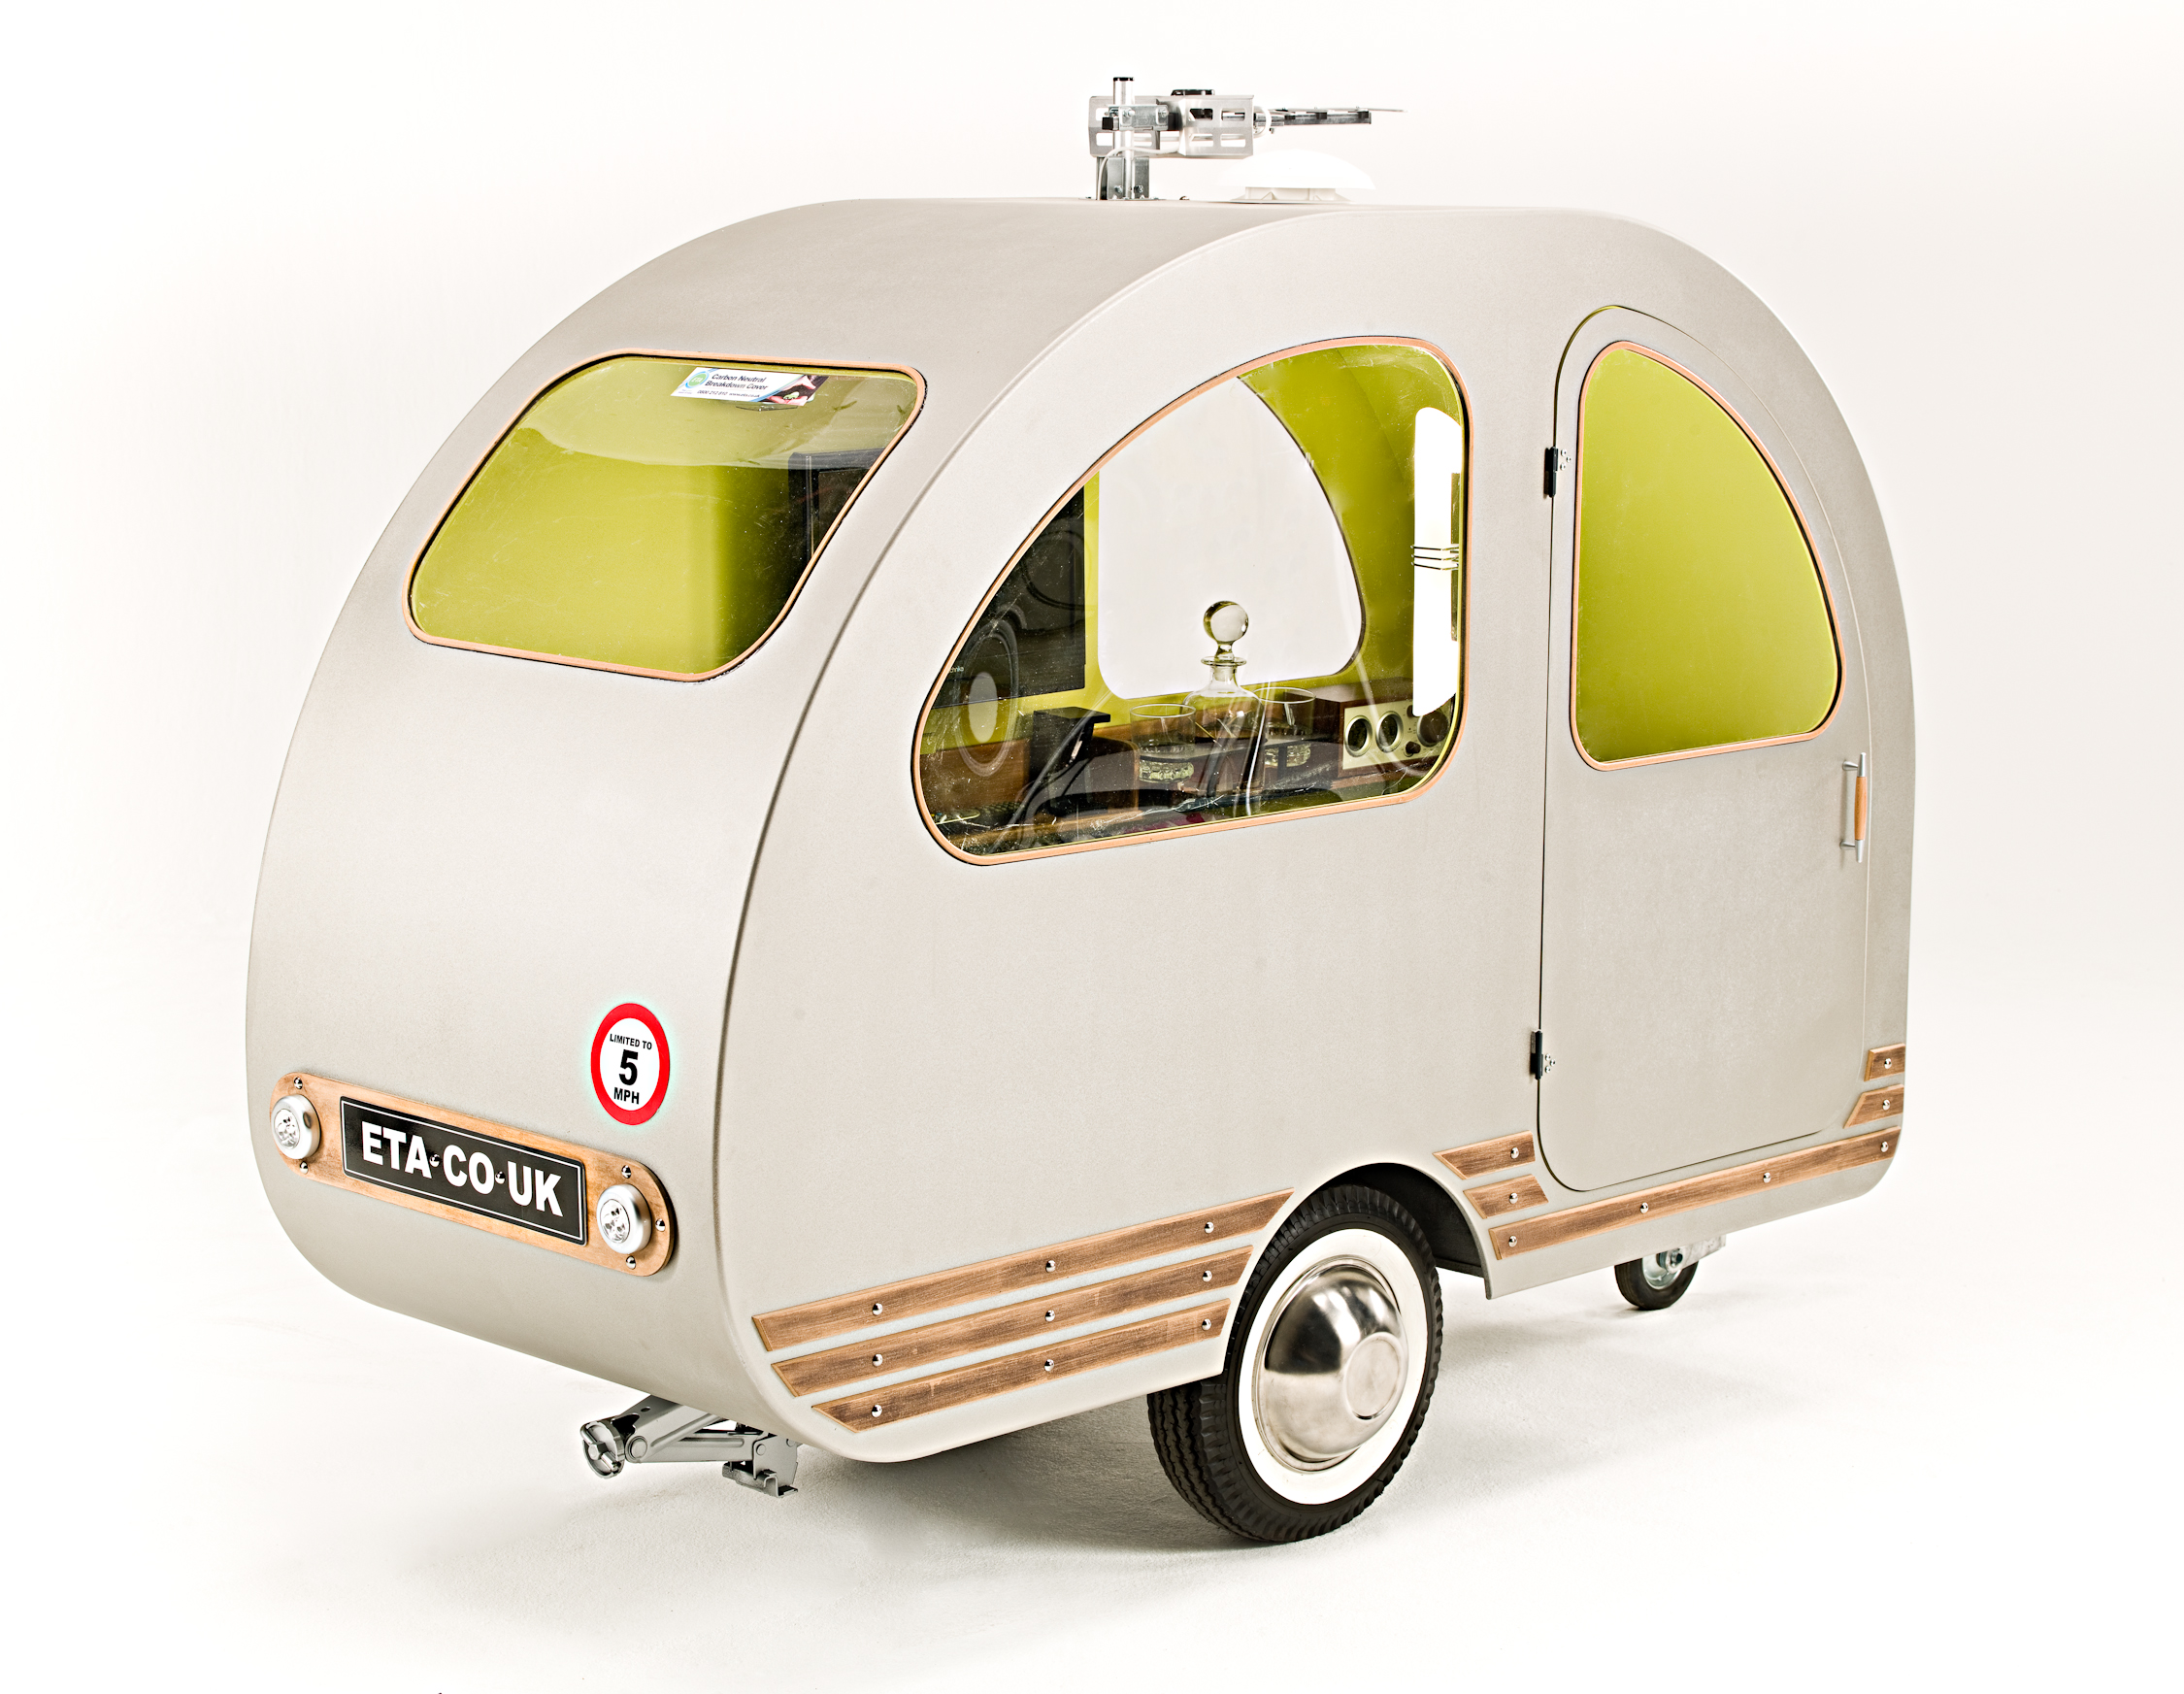 The caravan designed to be towed behind a bicycle